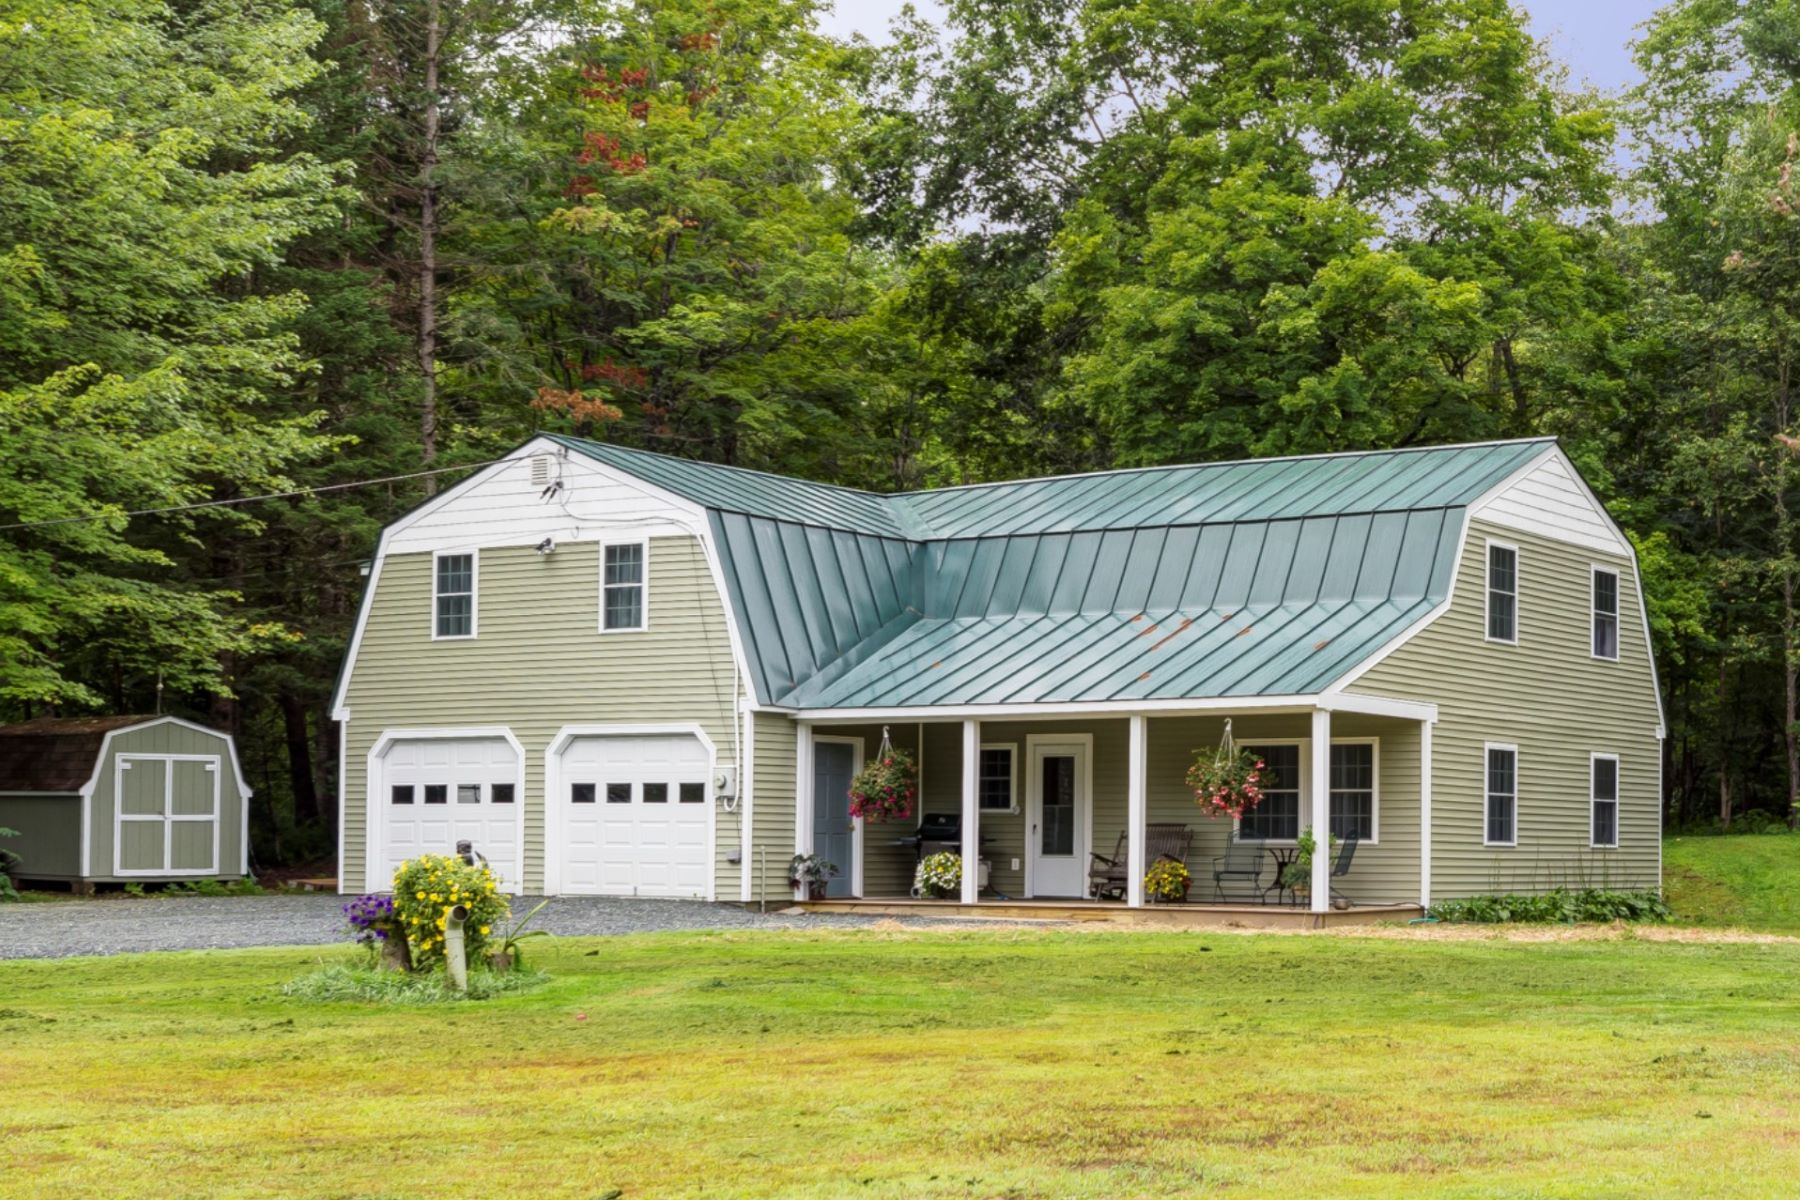 Single Family Homes for Sale at Three Bedroom Gambrel in West Fairlee 2638 Vt Route 244 Hwy West Fairlee, Vermont 05045 United States